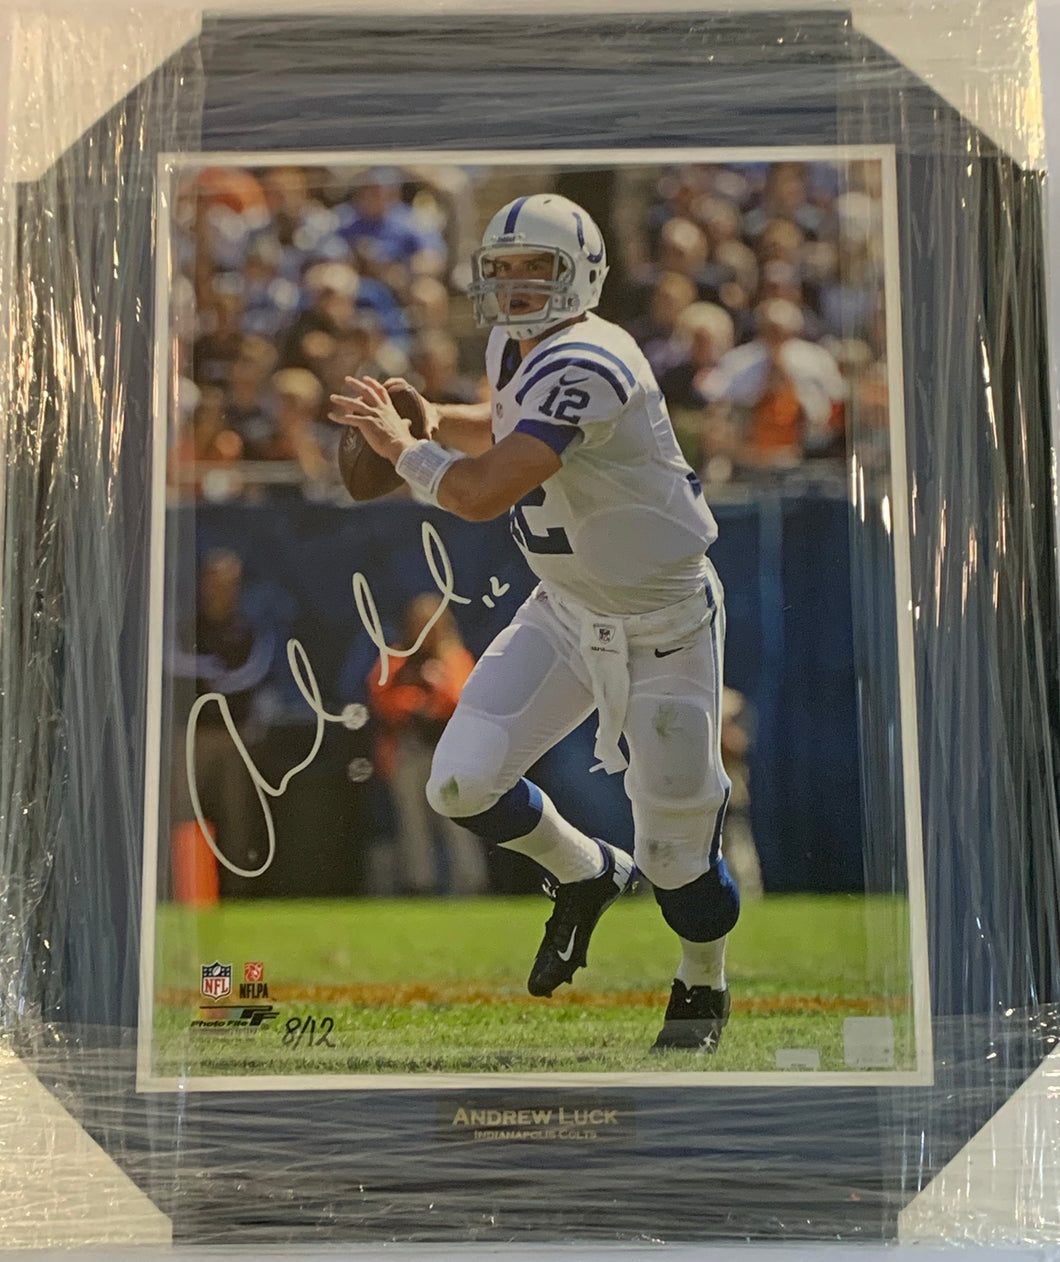 Andrew Luck Autographed